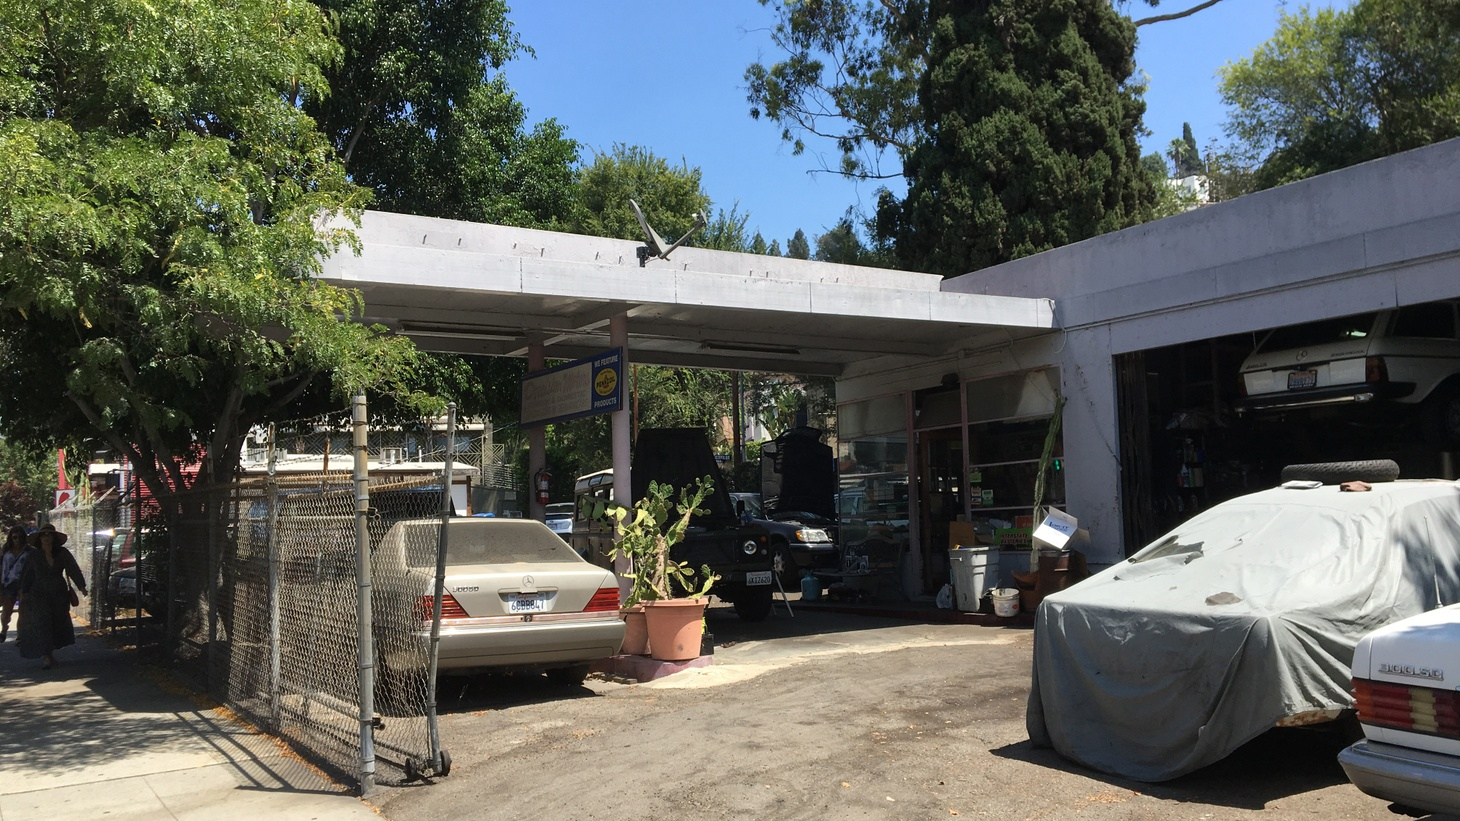 There's an old service station in Silver Lake, just a couple blocks south of the reservoir. You might not even notice it if you walk by.